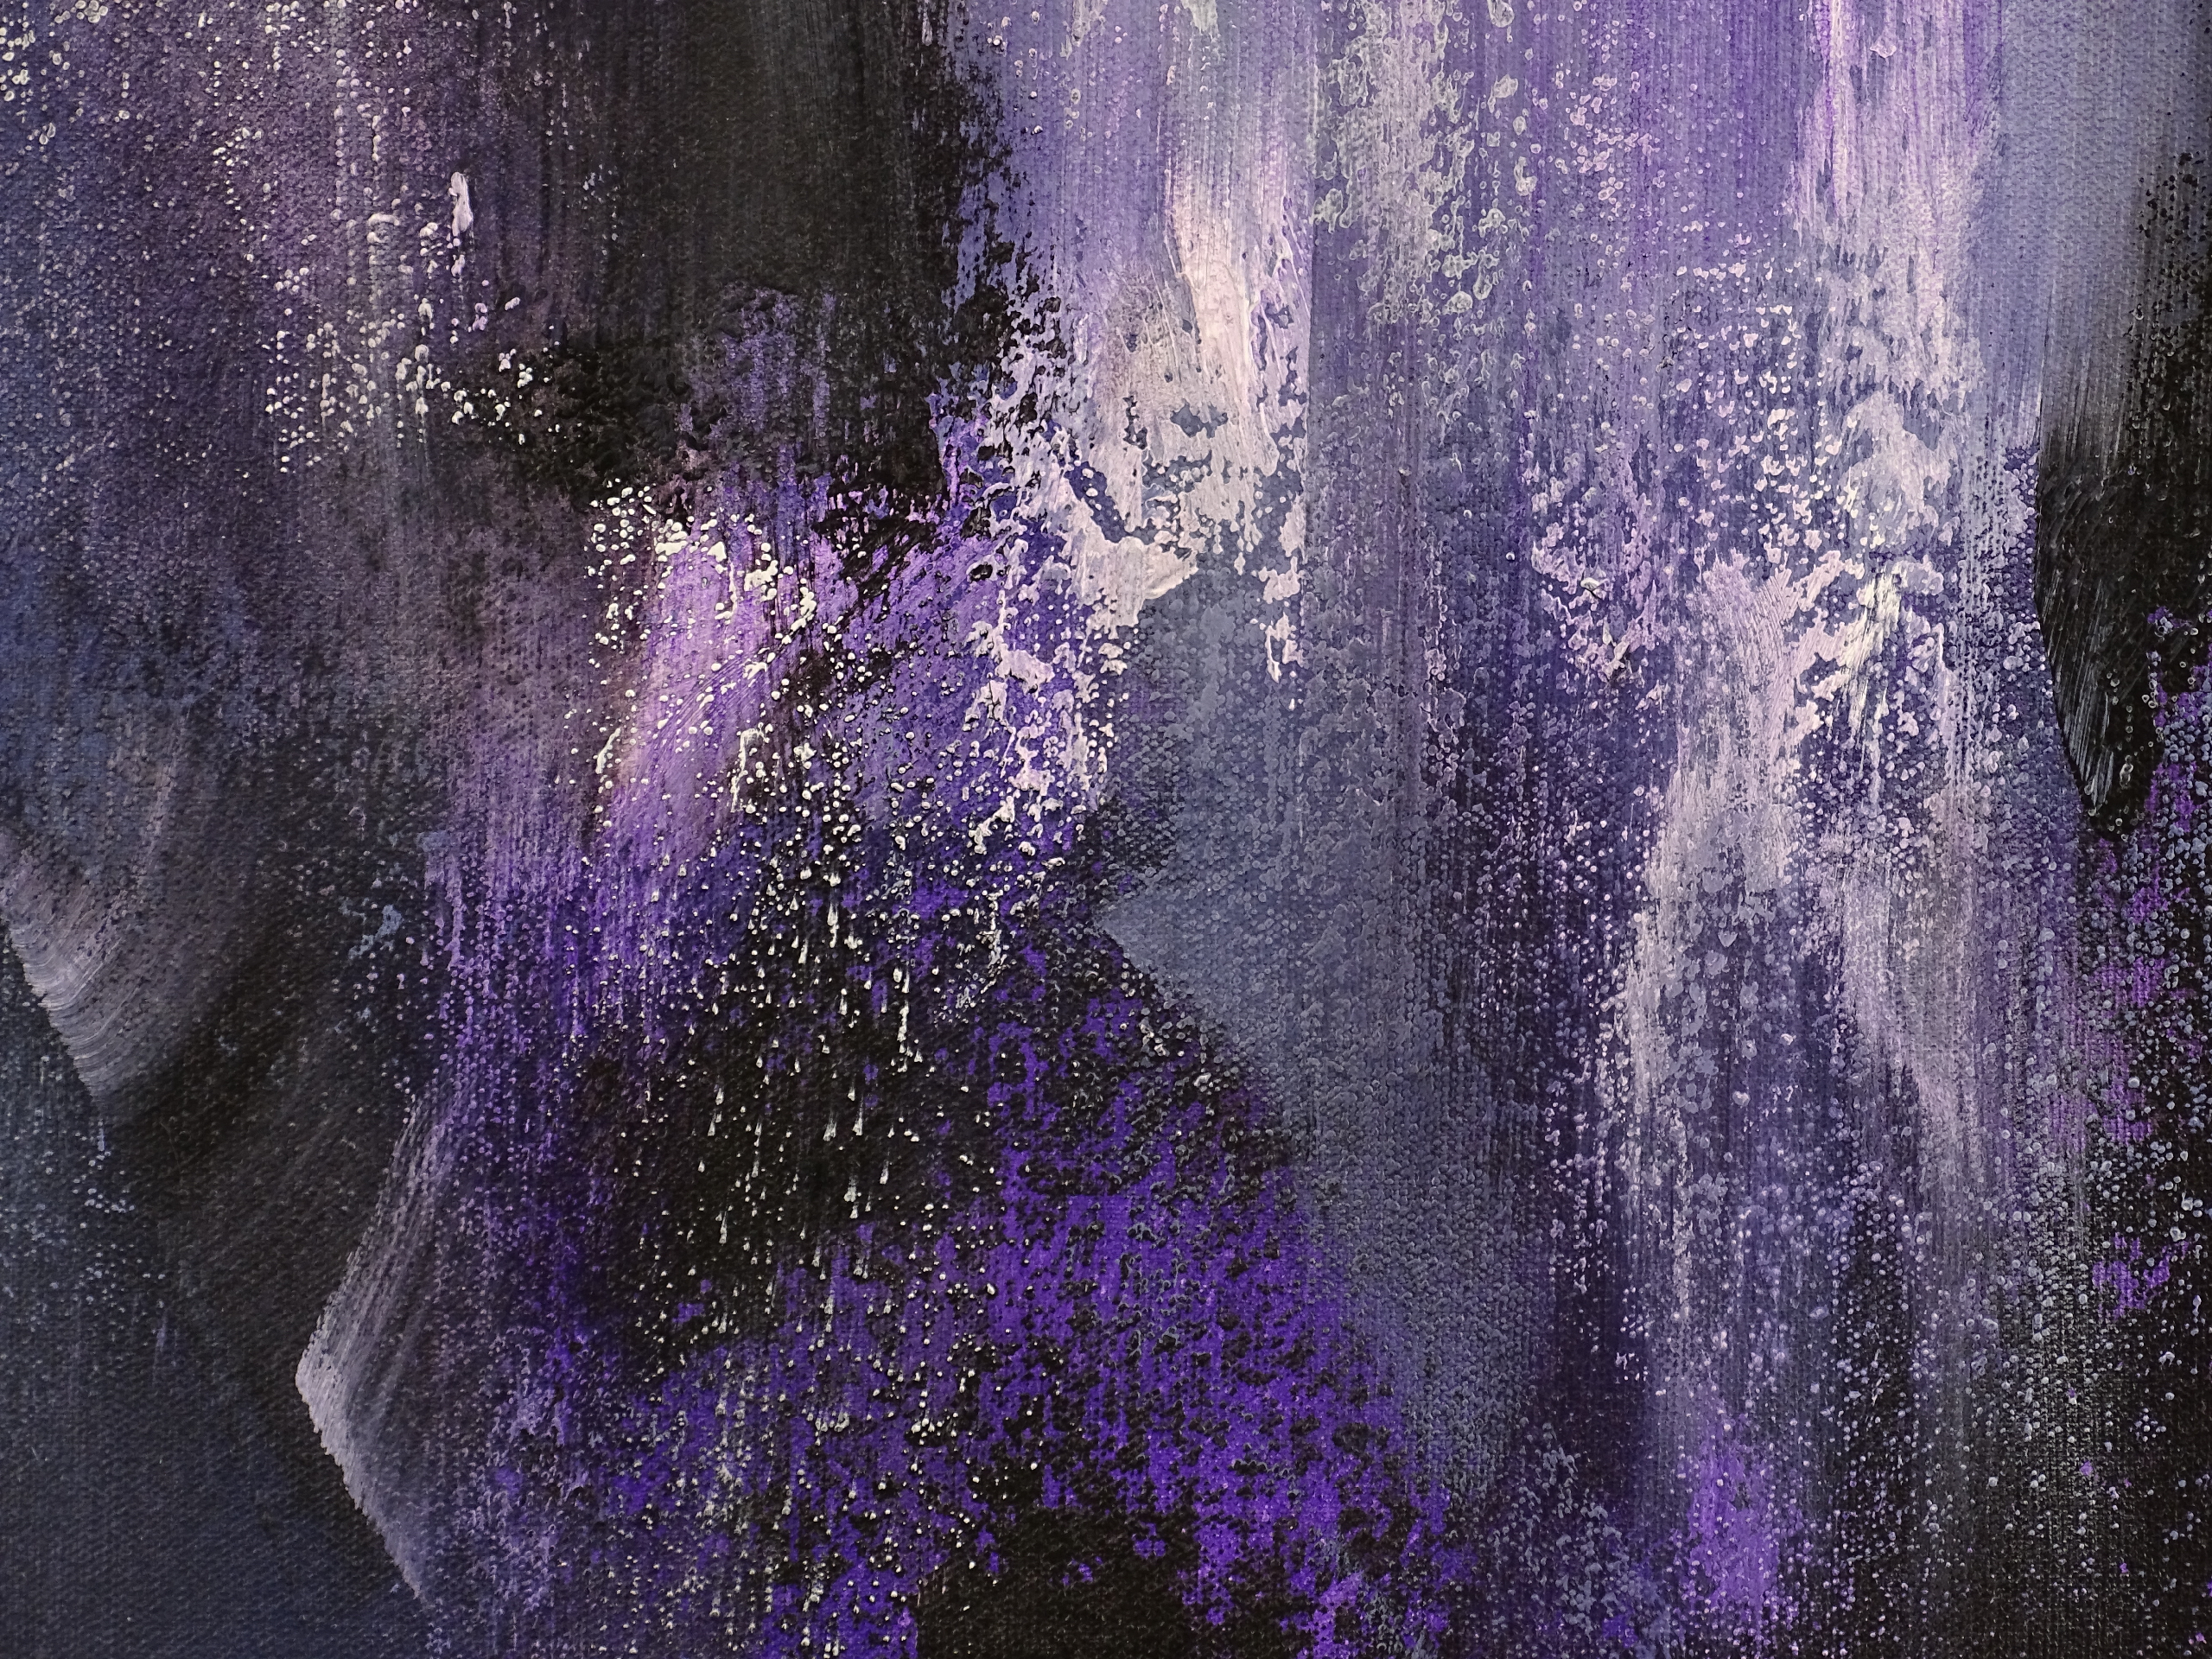 Dark Mysterious Abstract Painting - Voodoo